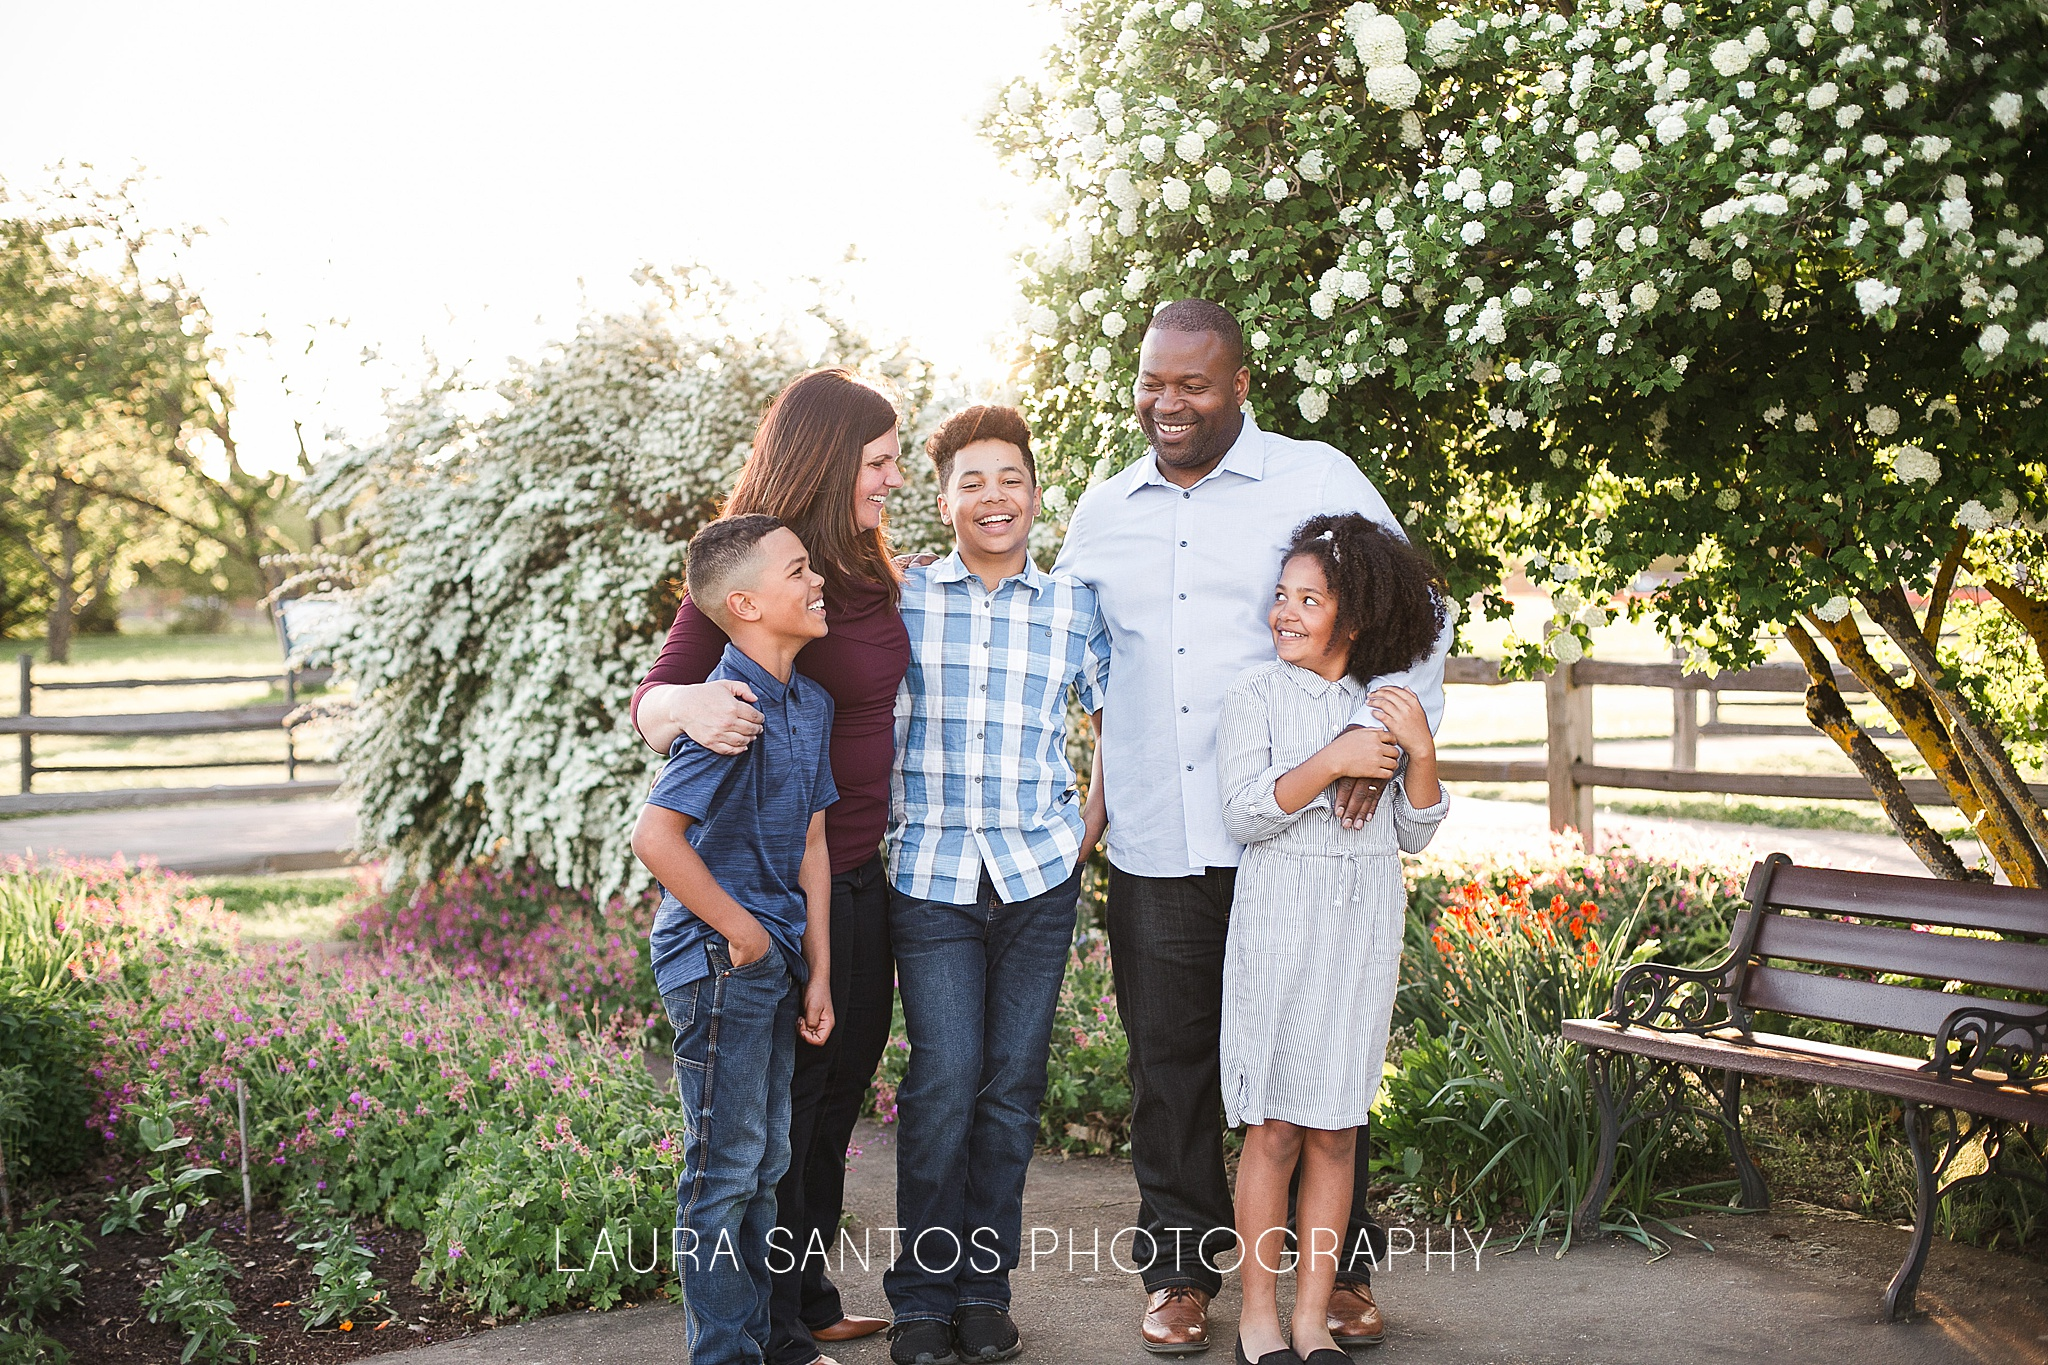 Laura Santos Photography Portland Oregon Family Photographer_0937.jpg